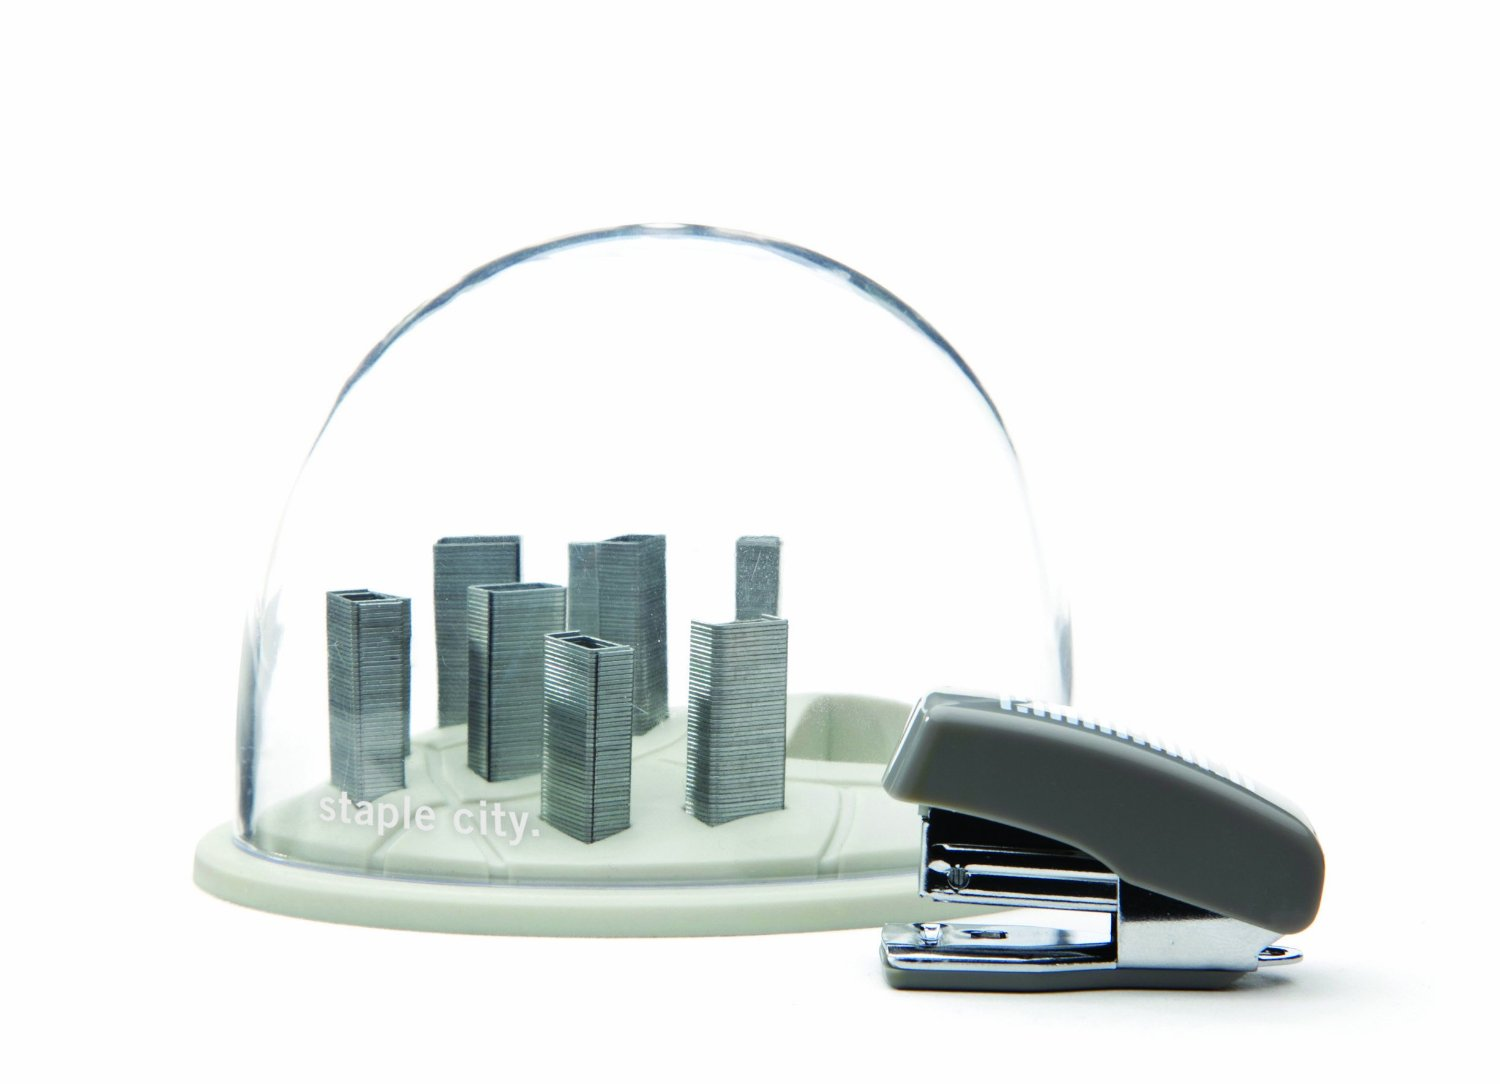 Staple City Desk Dock